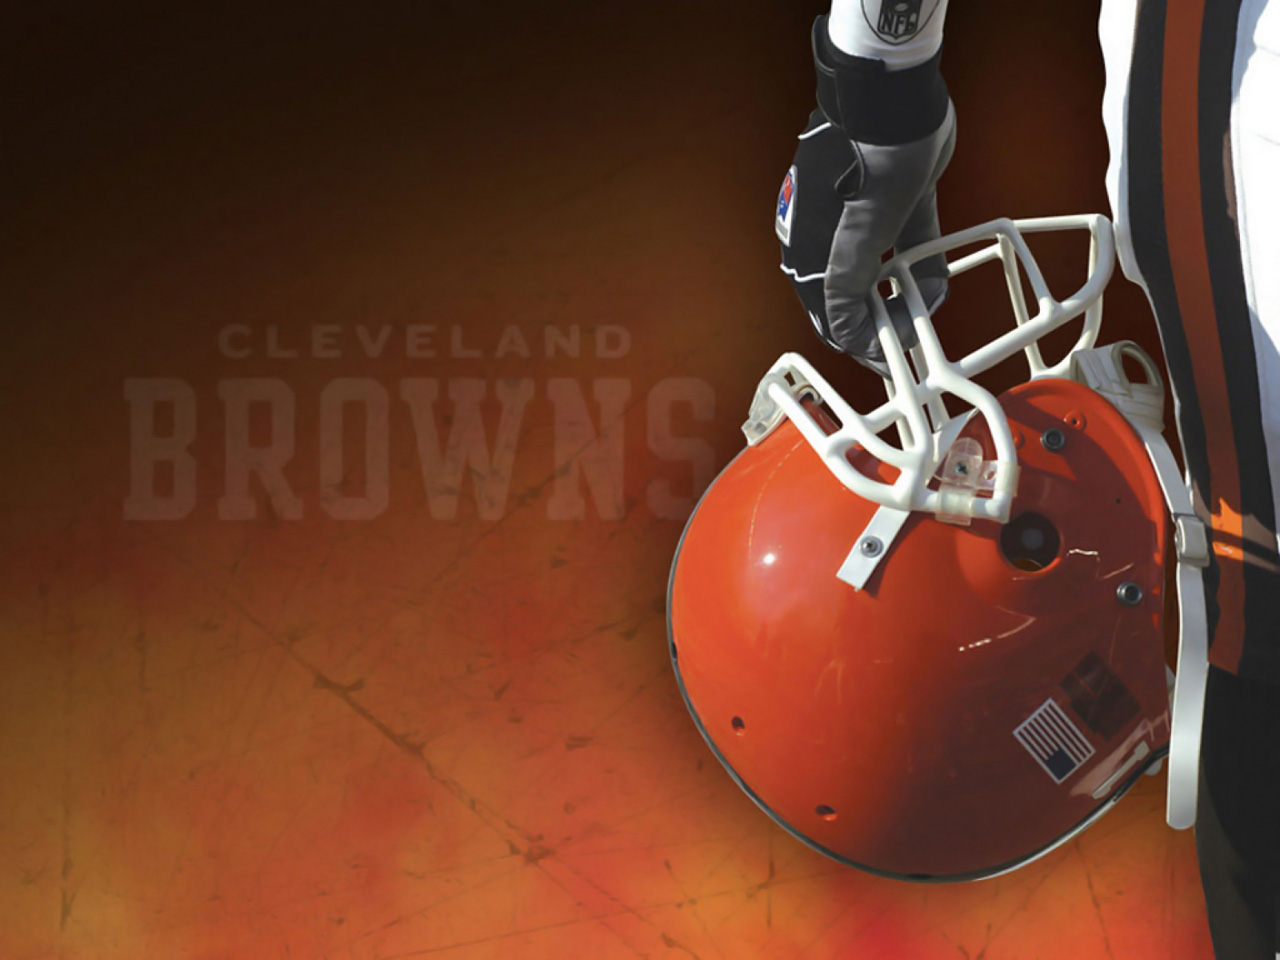 Cleveland Browns Wallpaper: Interesting Cleveland Browns Wallpapers 1280x960px